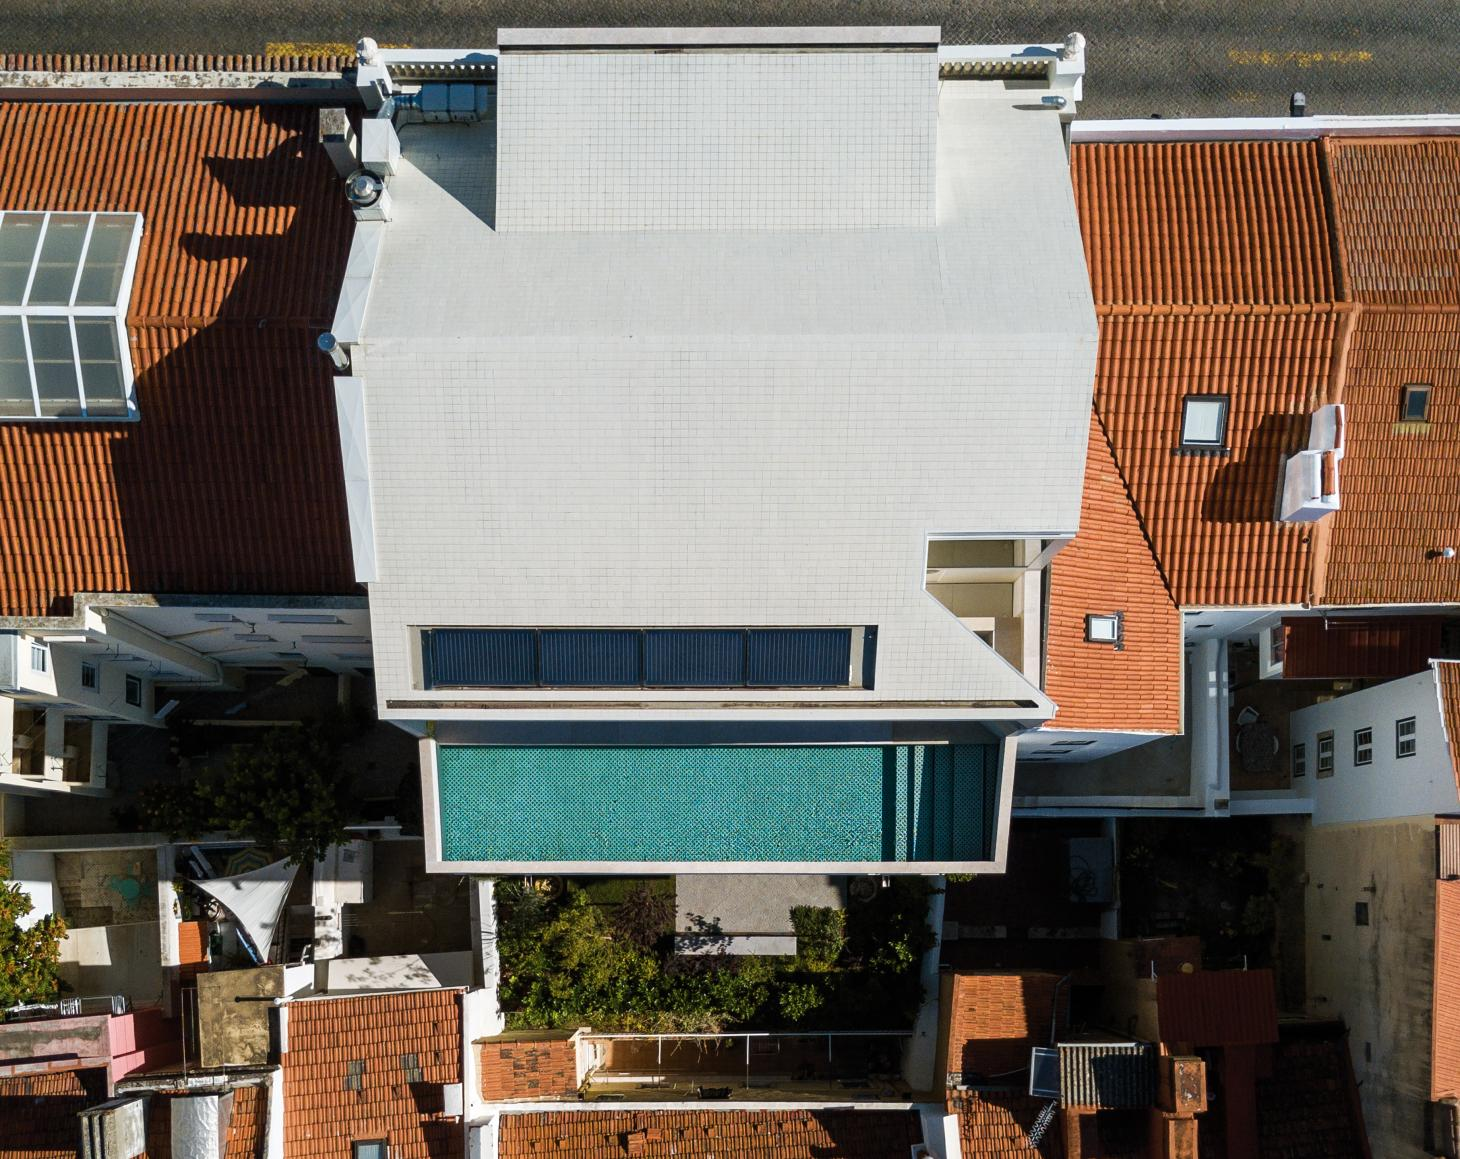 Aerial view of the Inês Lobo and Paolo Mendes da Rocha-renovated house in Lisbon